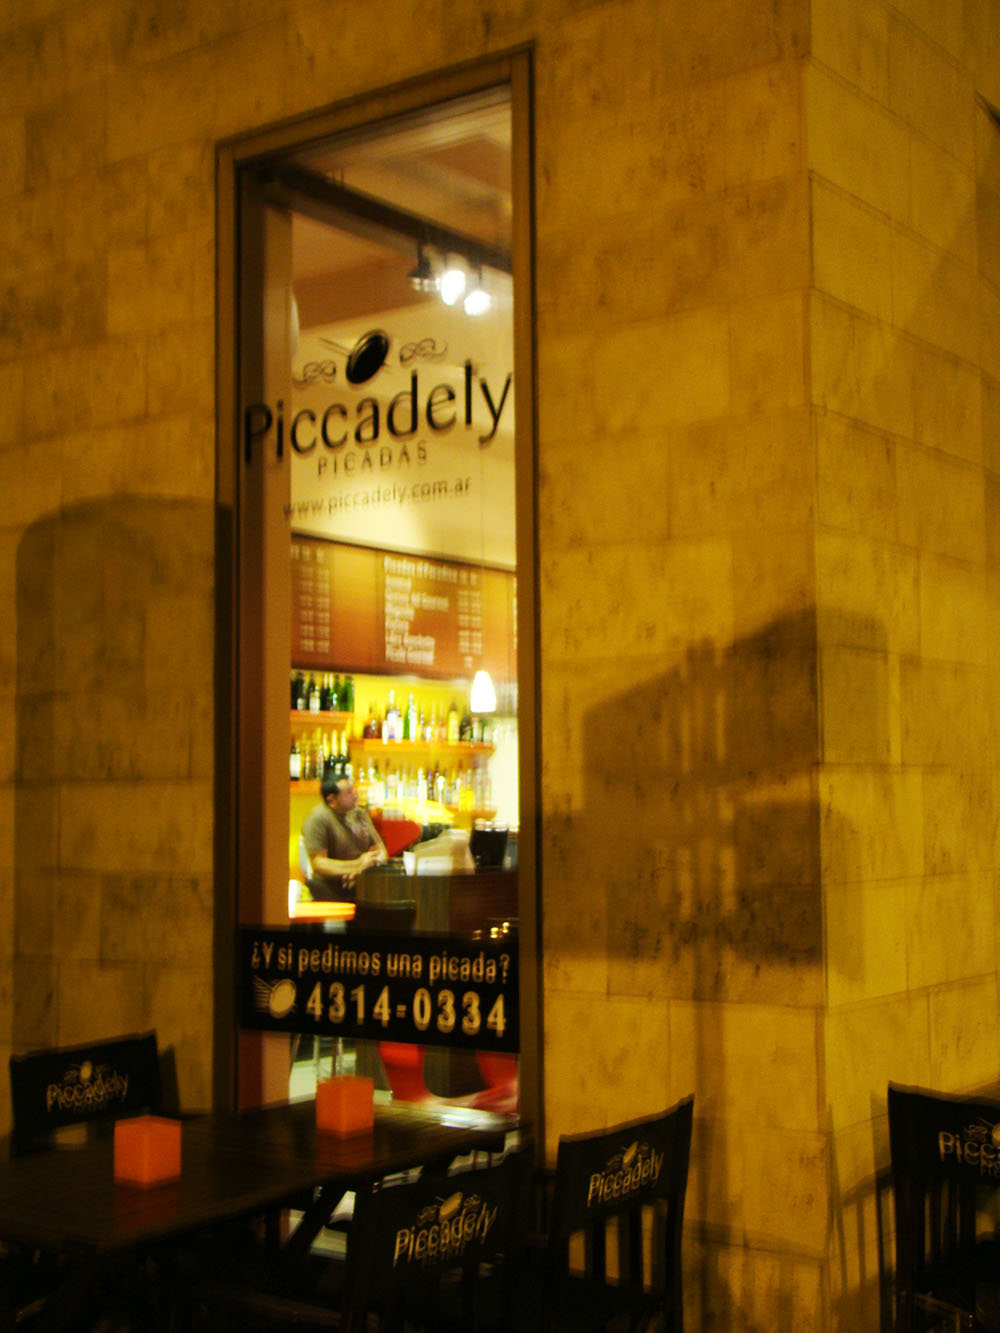 Piccadely_07